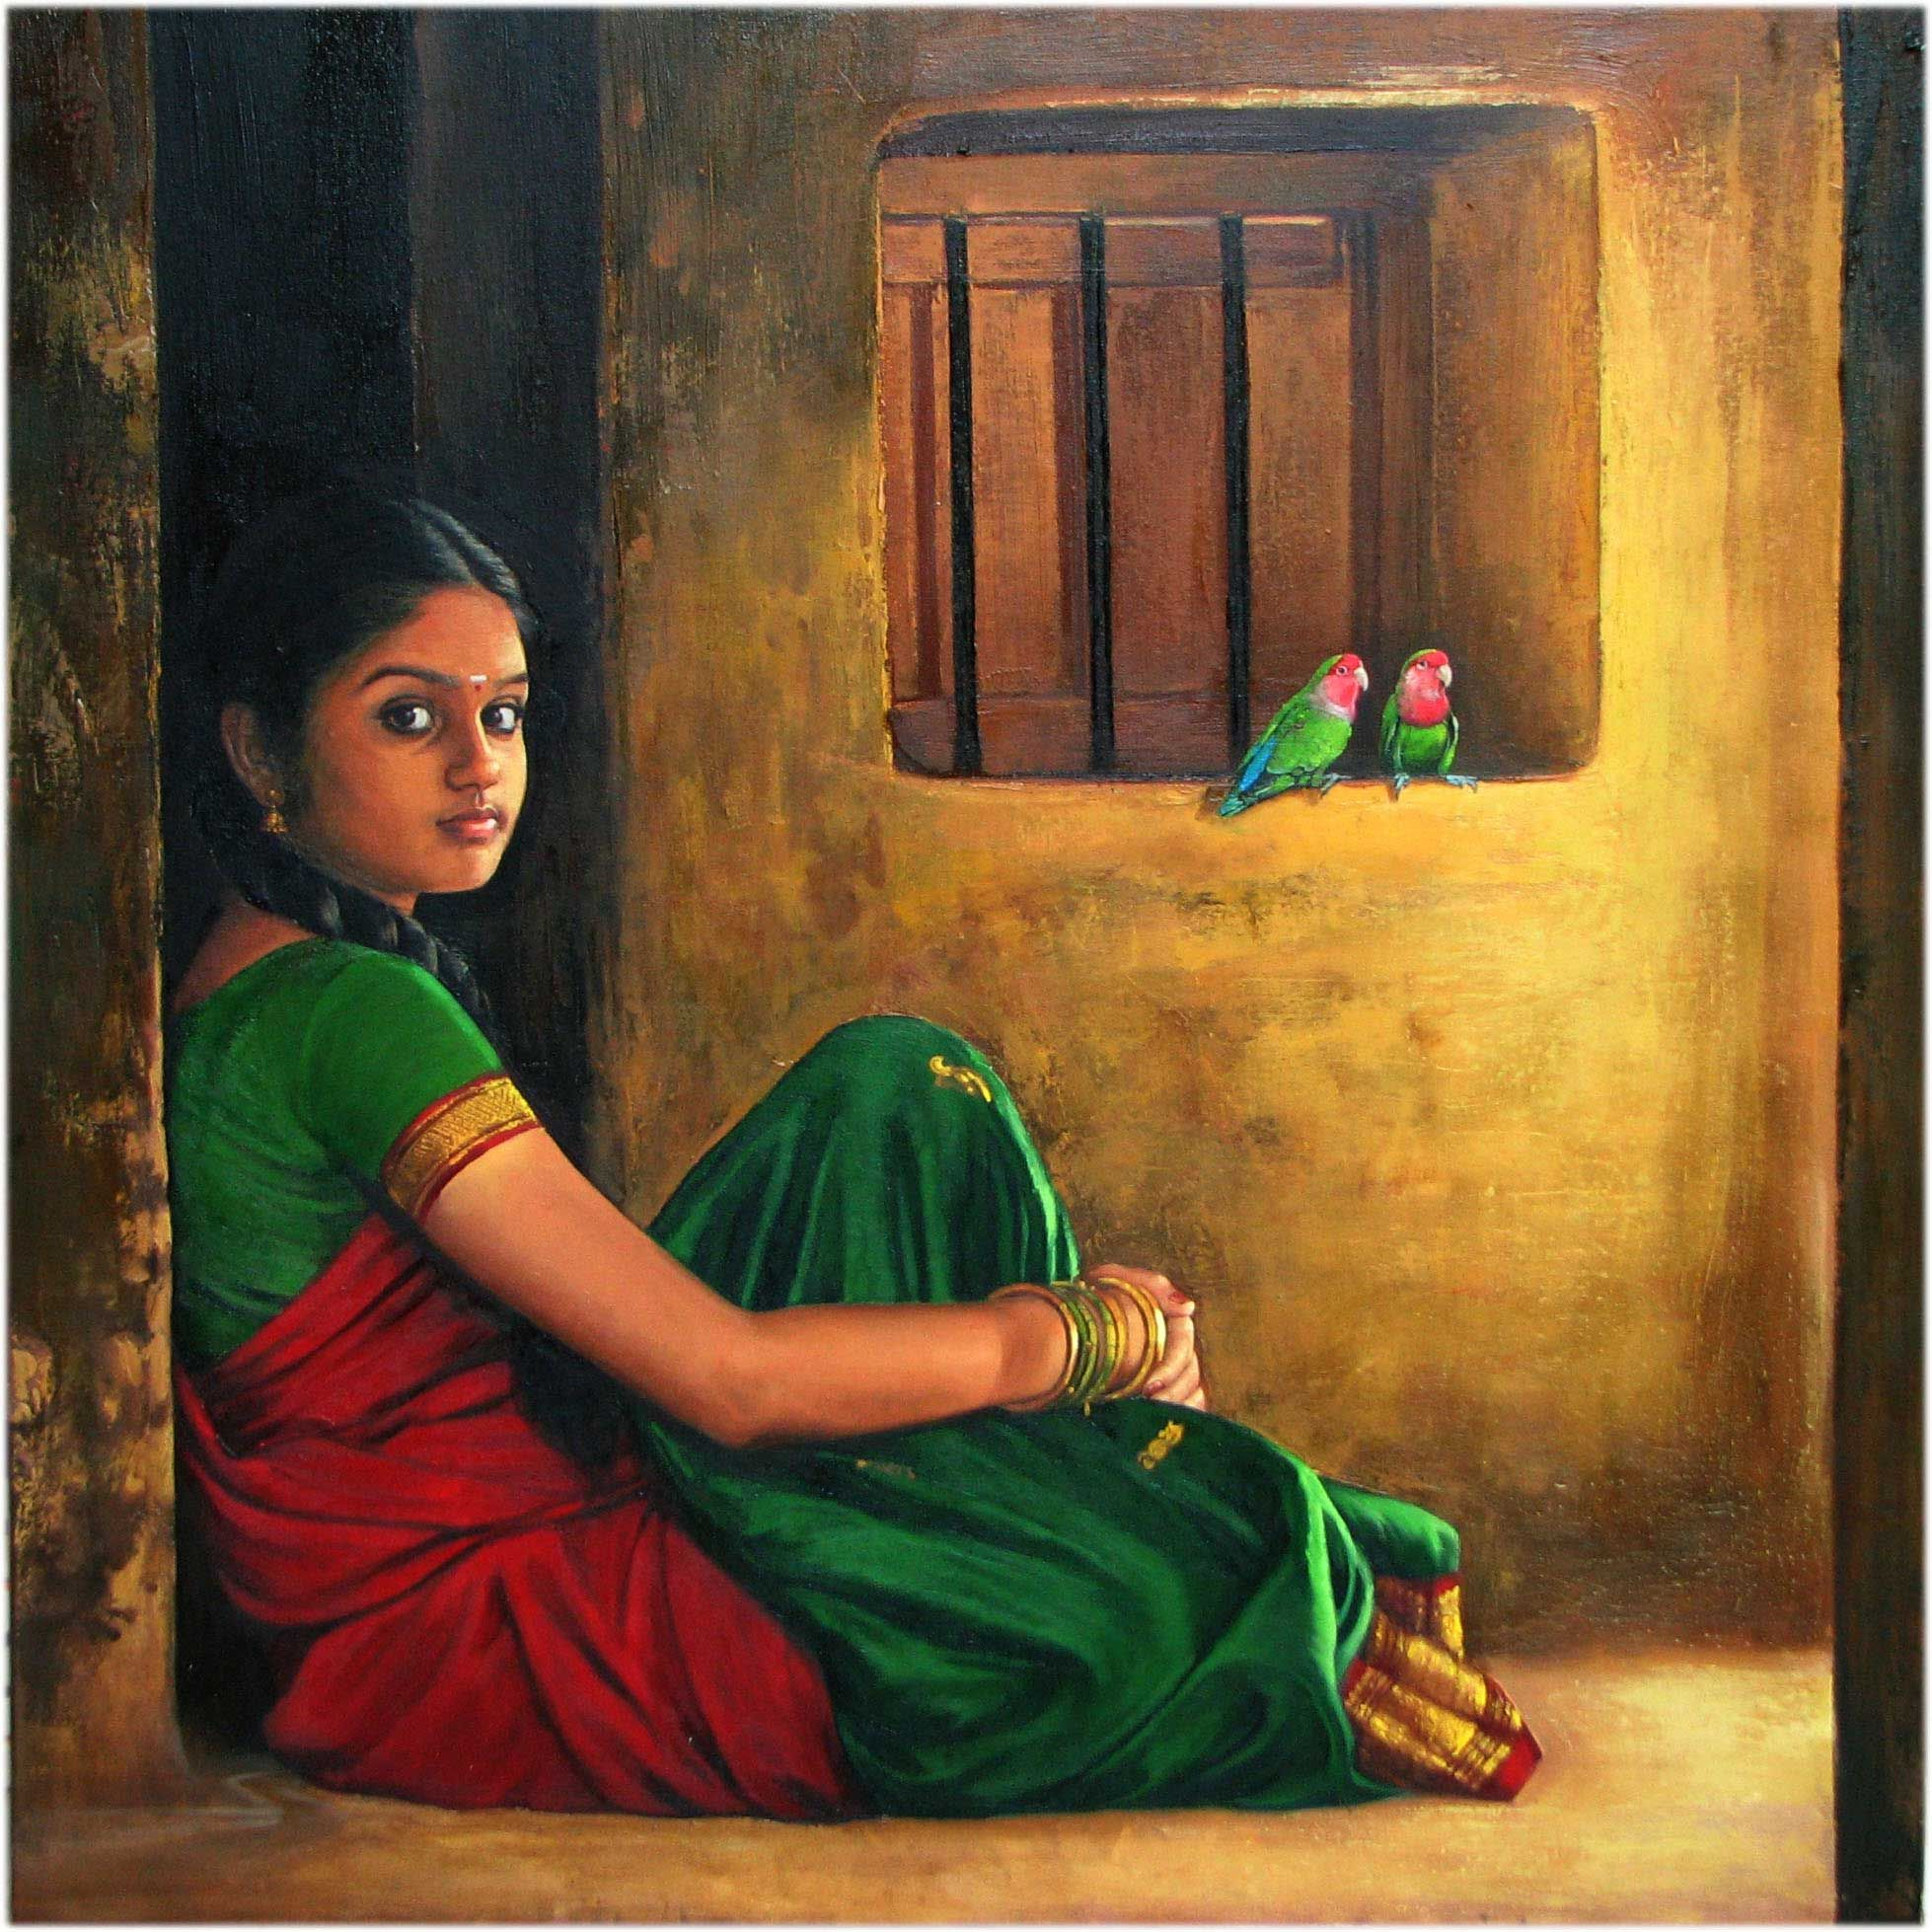 'Woman Cooking' oil painting by Ilayaraja Awesome